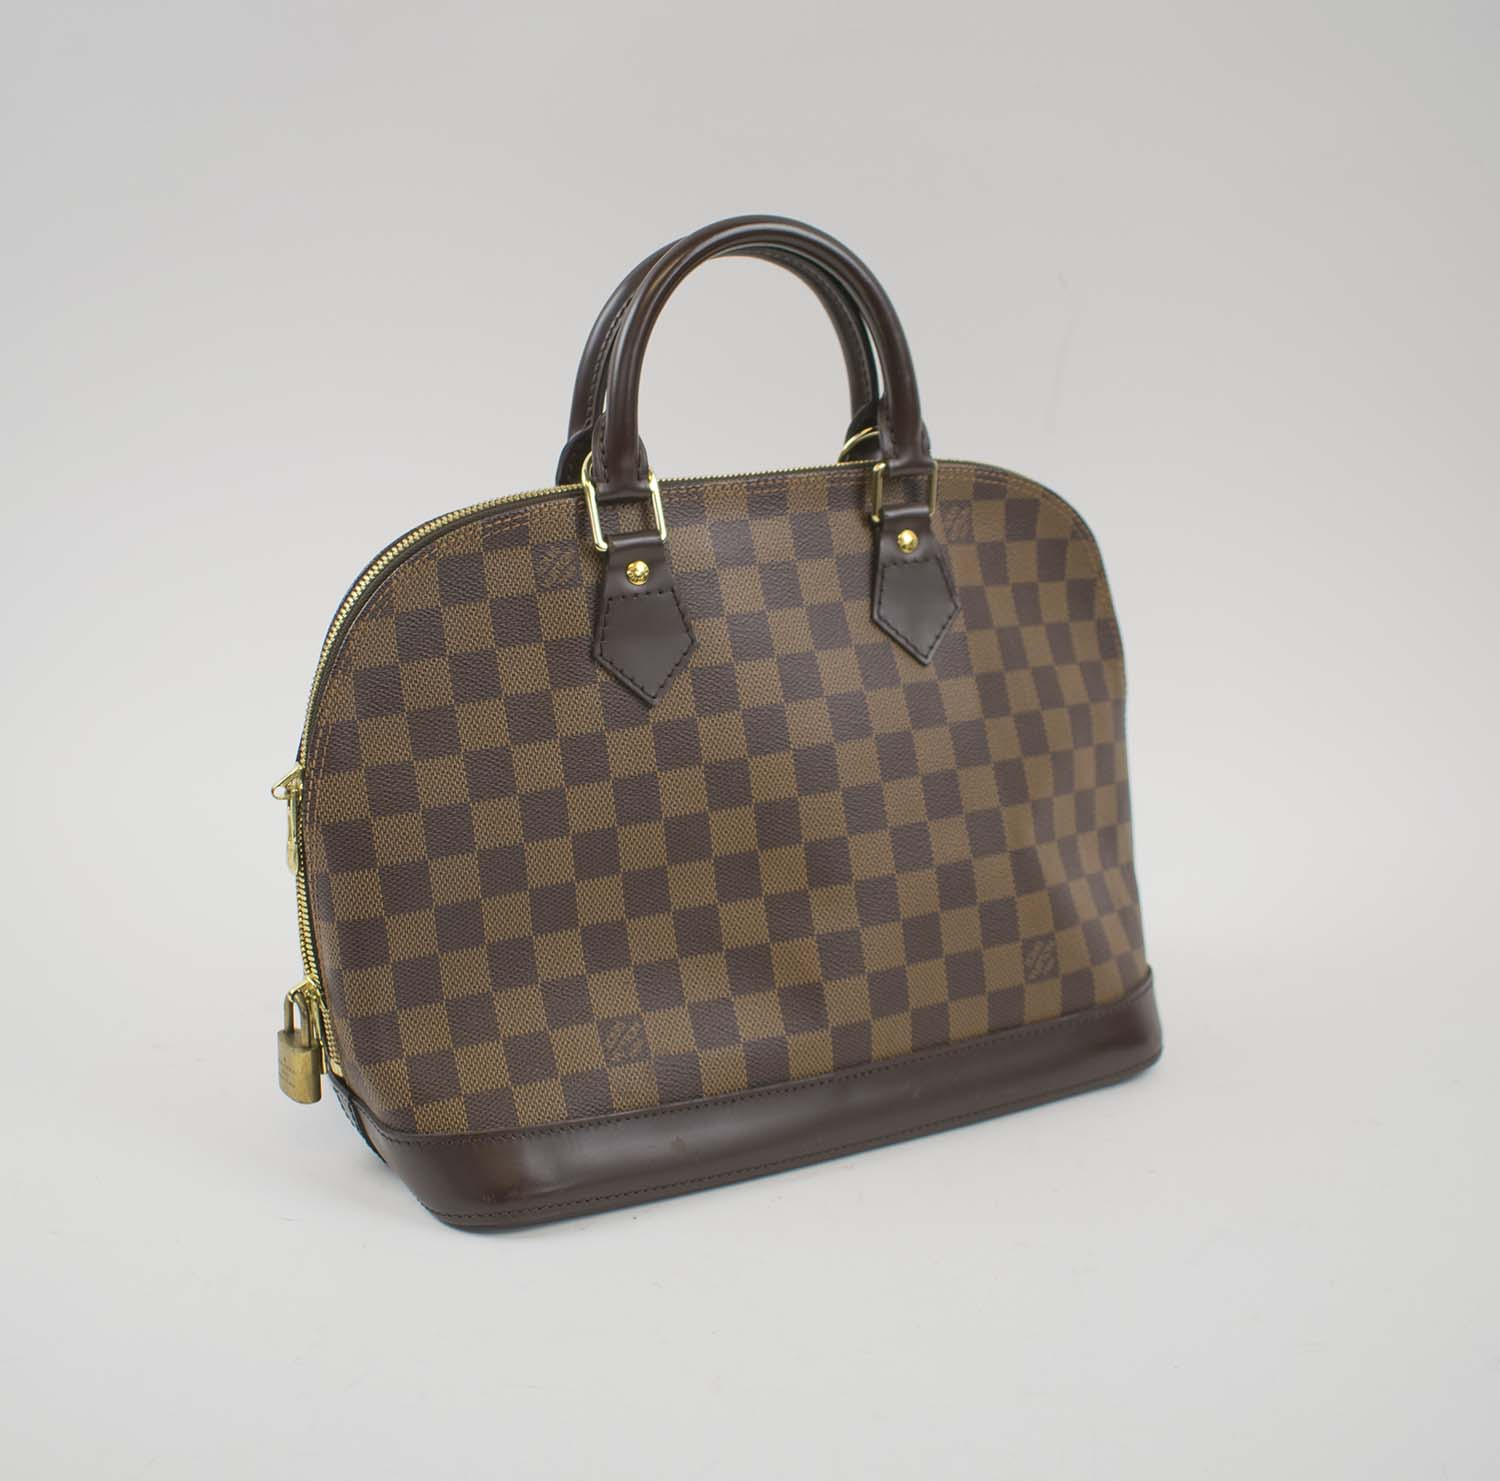 8da4581f3280 LOUIS VUITTON DAMIER ALMA PM BAG